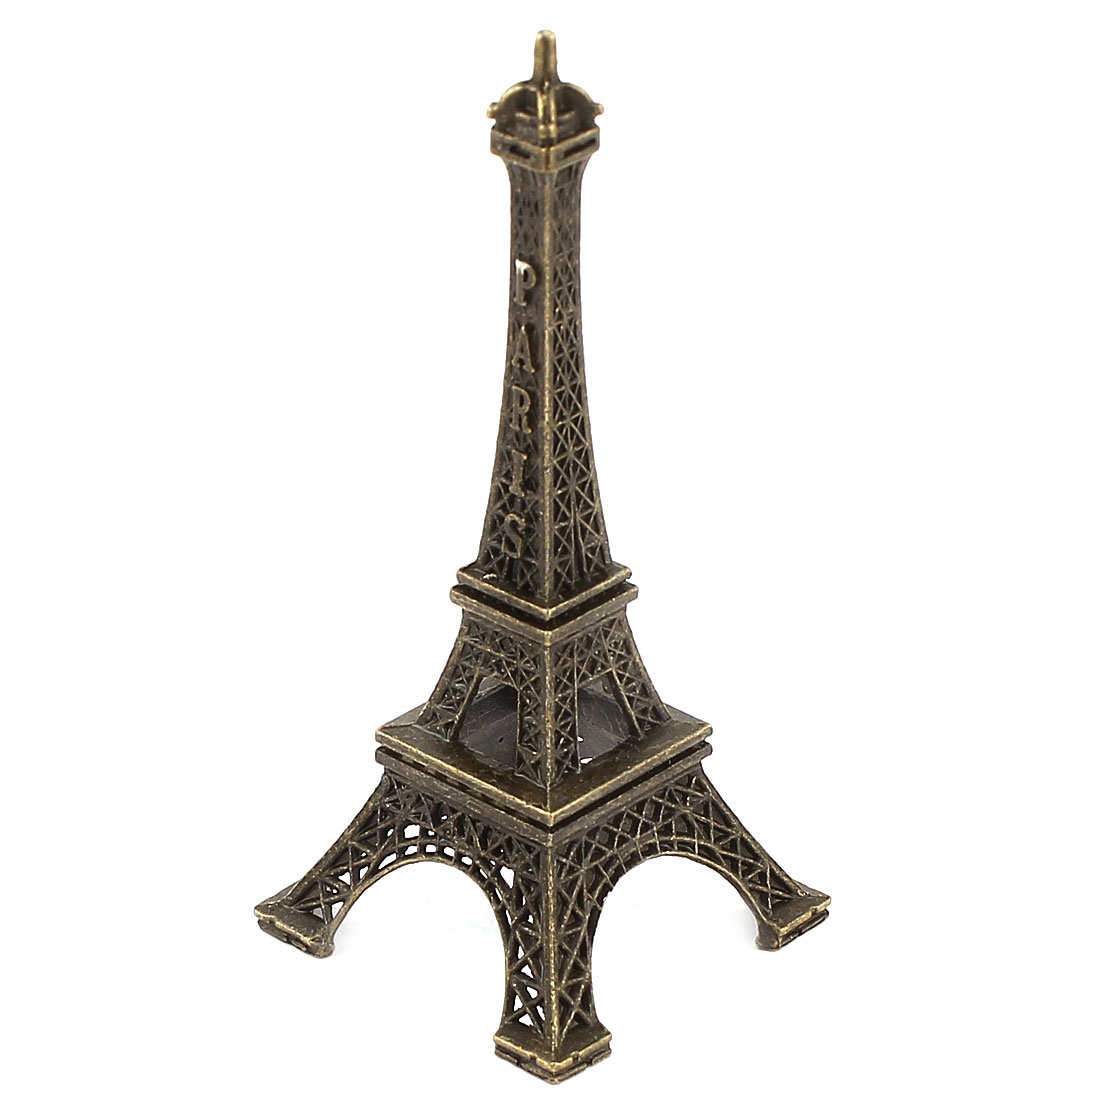 Bronze Tone Metal Paris Miniature Eiffel Tower Model Souvenir Decoration 3.1""